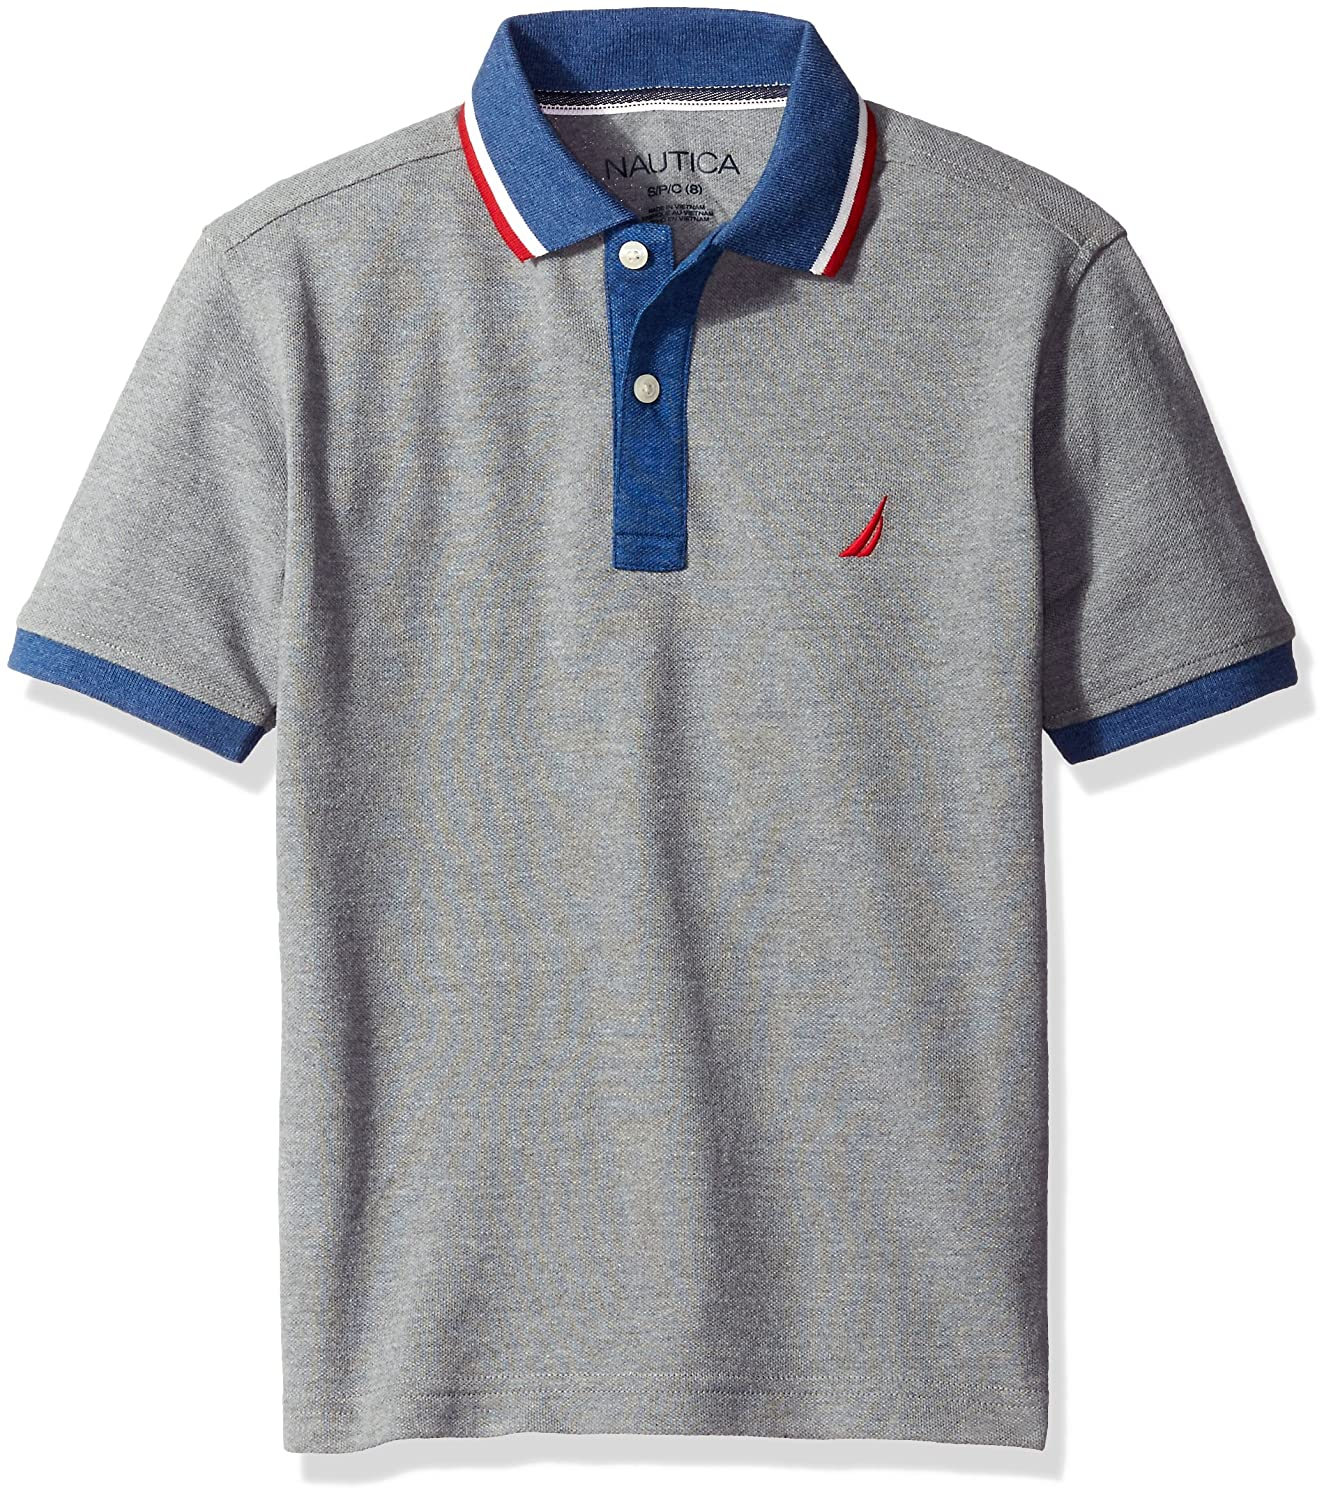 Nautica boys Short Sleeve Polo With Tipped Collar Medium Grey Heather Large/7 N481660Q